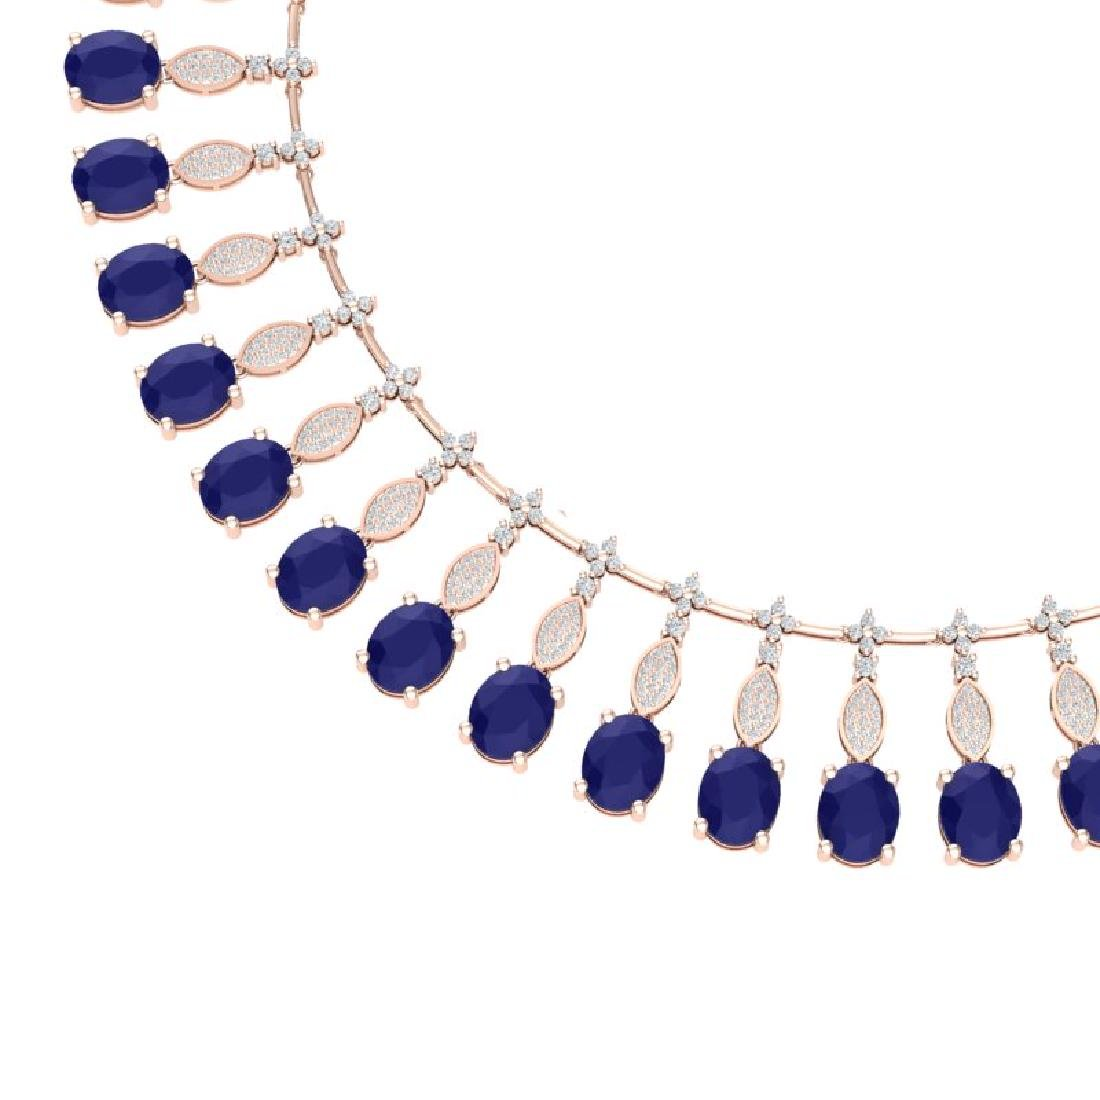 65.62 CTW Royalty Sapphire & VS Diamond Necklace 18K